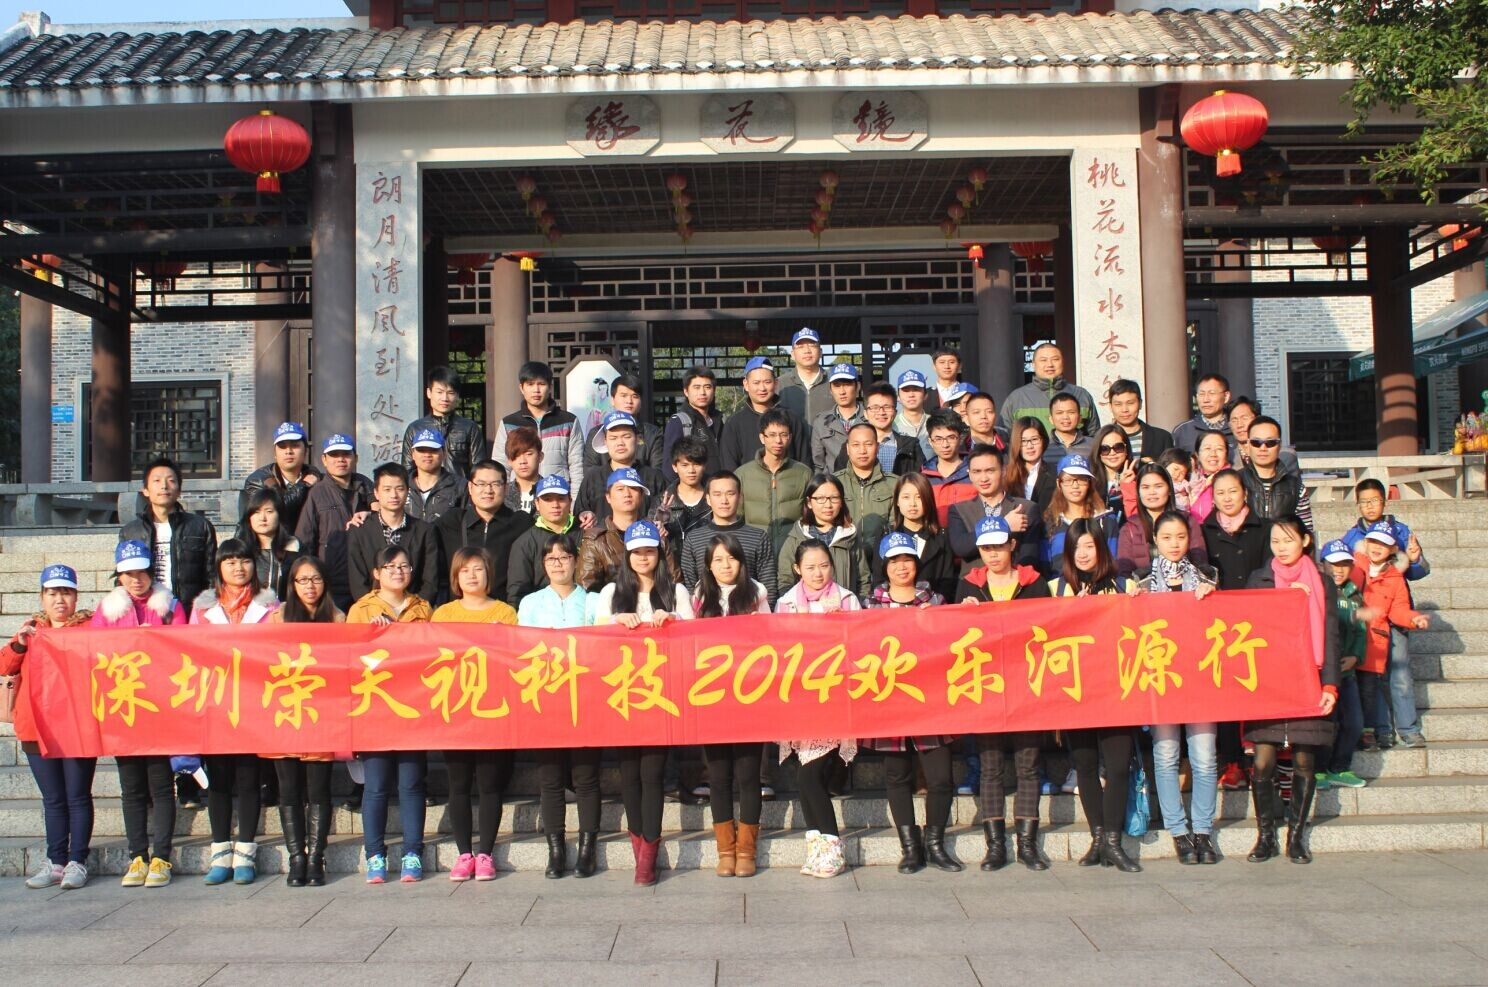 Ratingsecu 2014 staff travelling to Heyuan